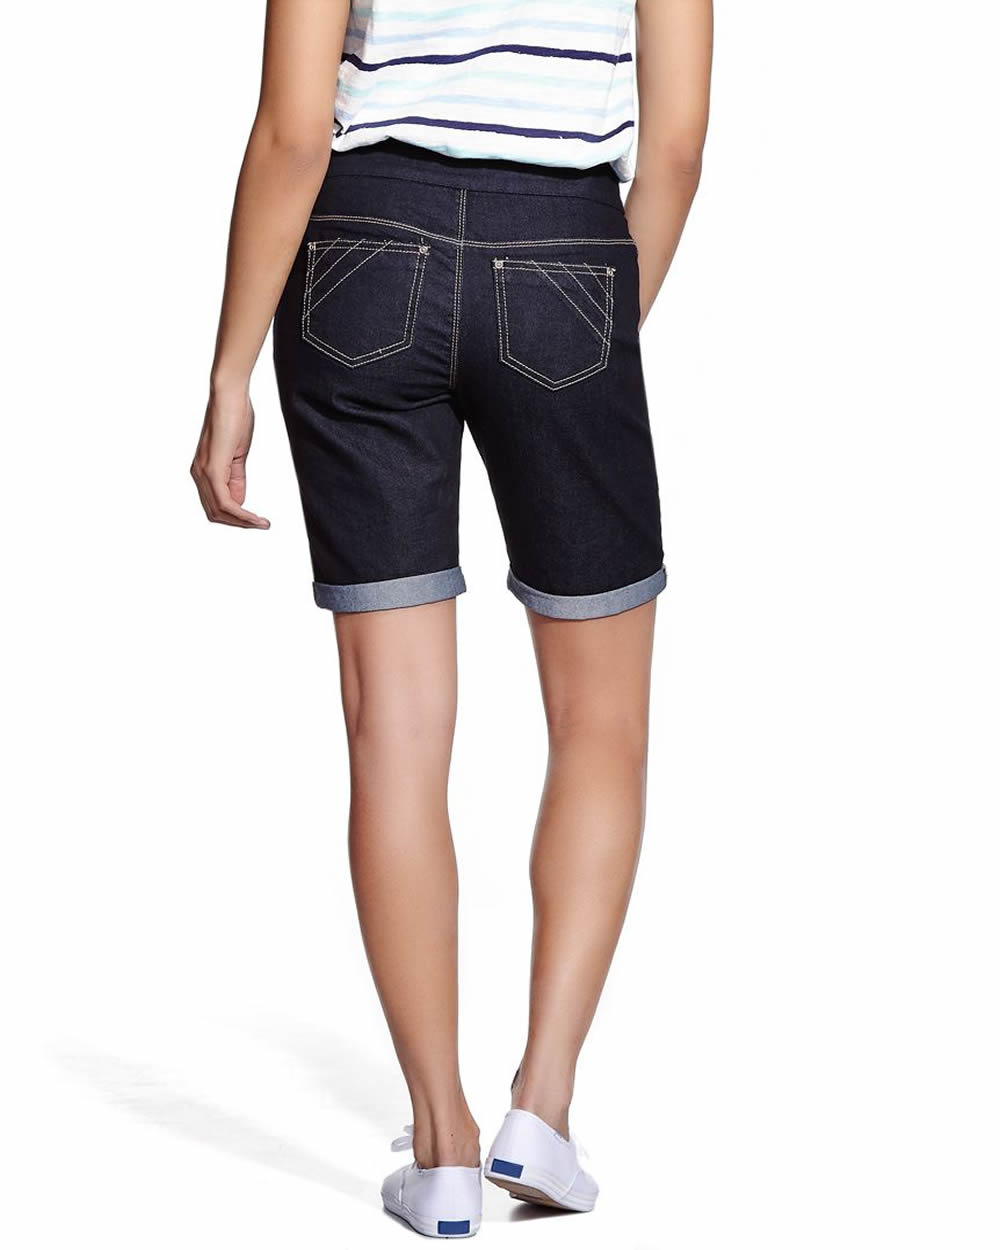 These denim bermuda shorts feature an ab-solution elastic waist, fading and whiskering, two front pockets, two back pockets, two coin pockets, and a hidden tummy panel. .